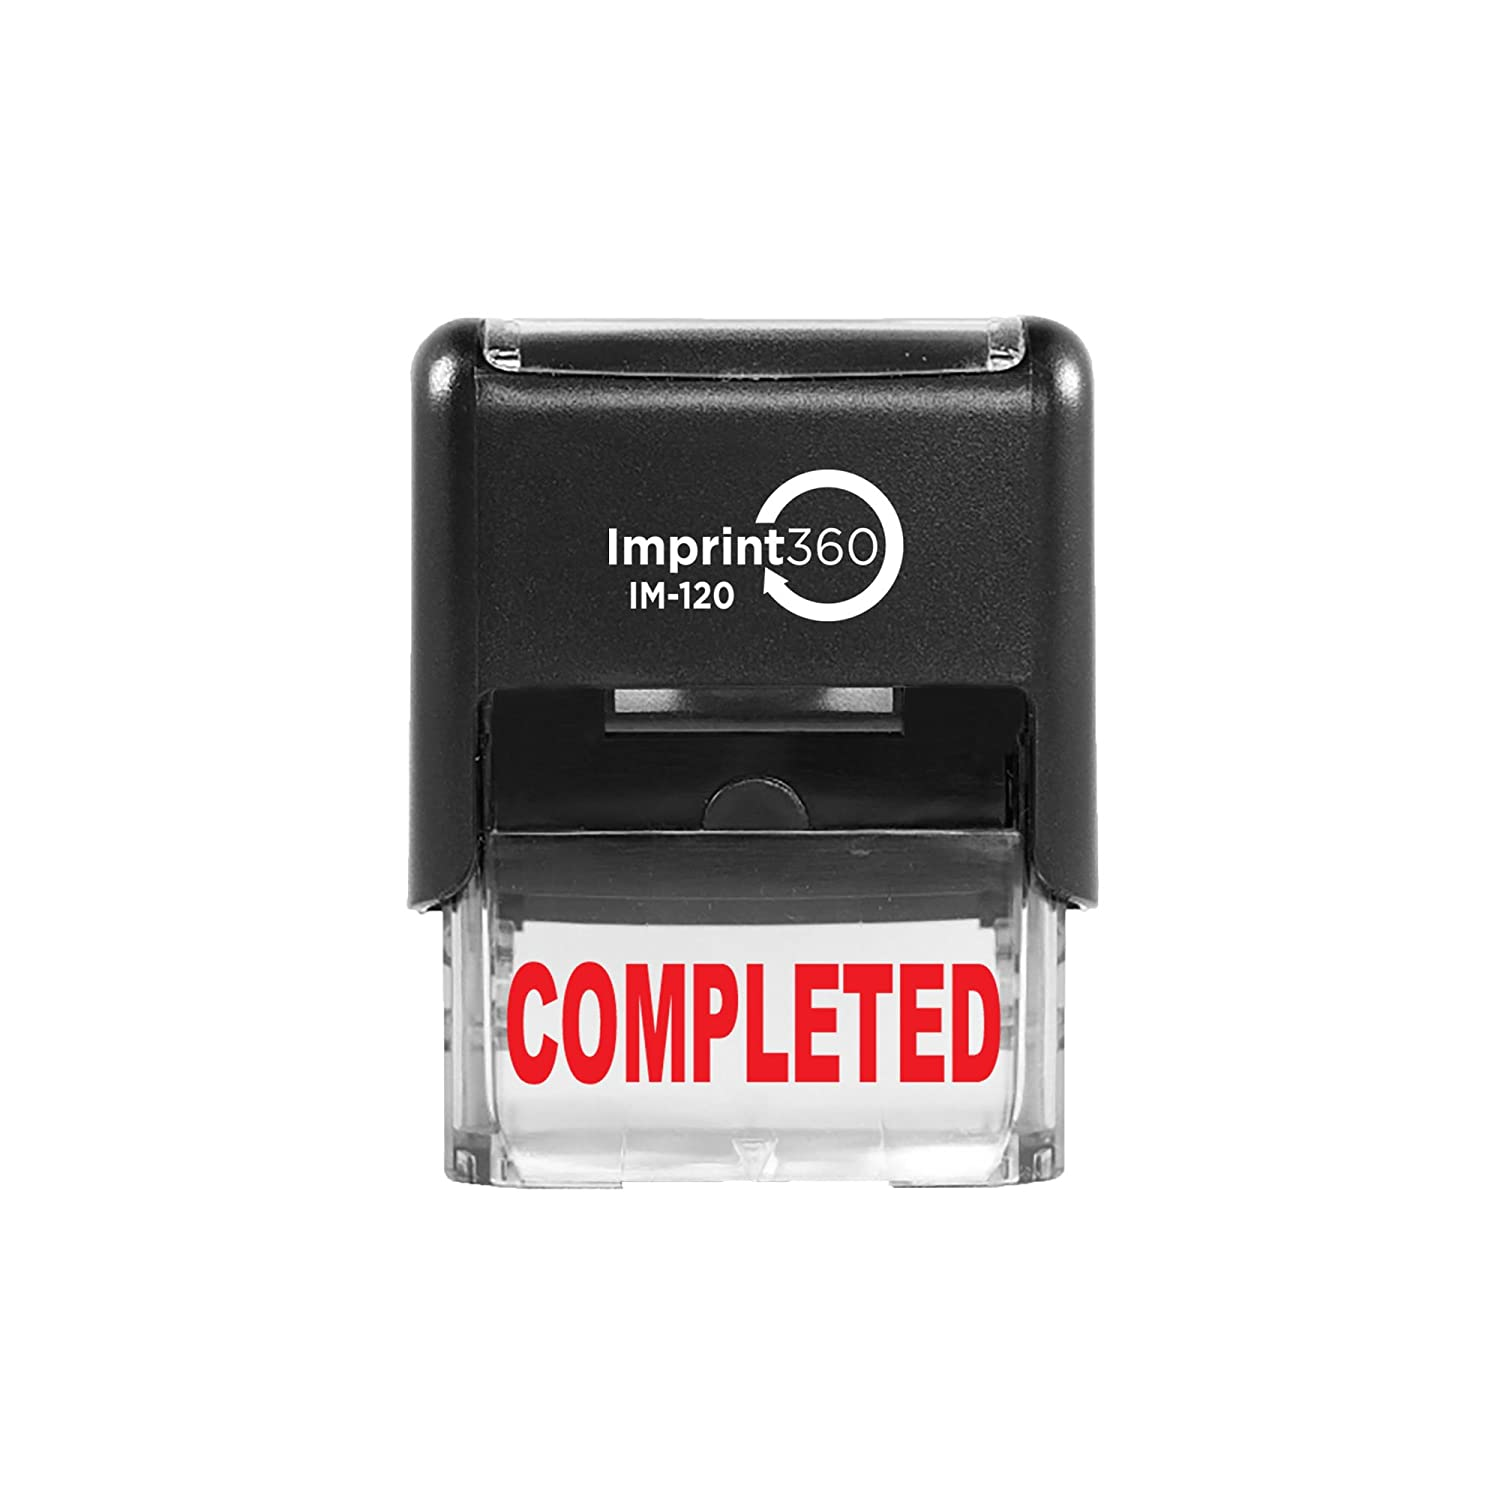 Imprint 360 AS-IMP1031 - Completed, Heavy Duty Commerical Quality Self-Inking Rubber Stamp, Red Ink, 9/16